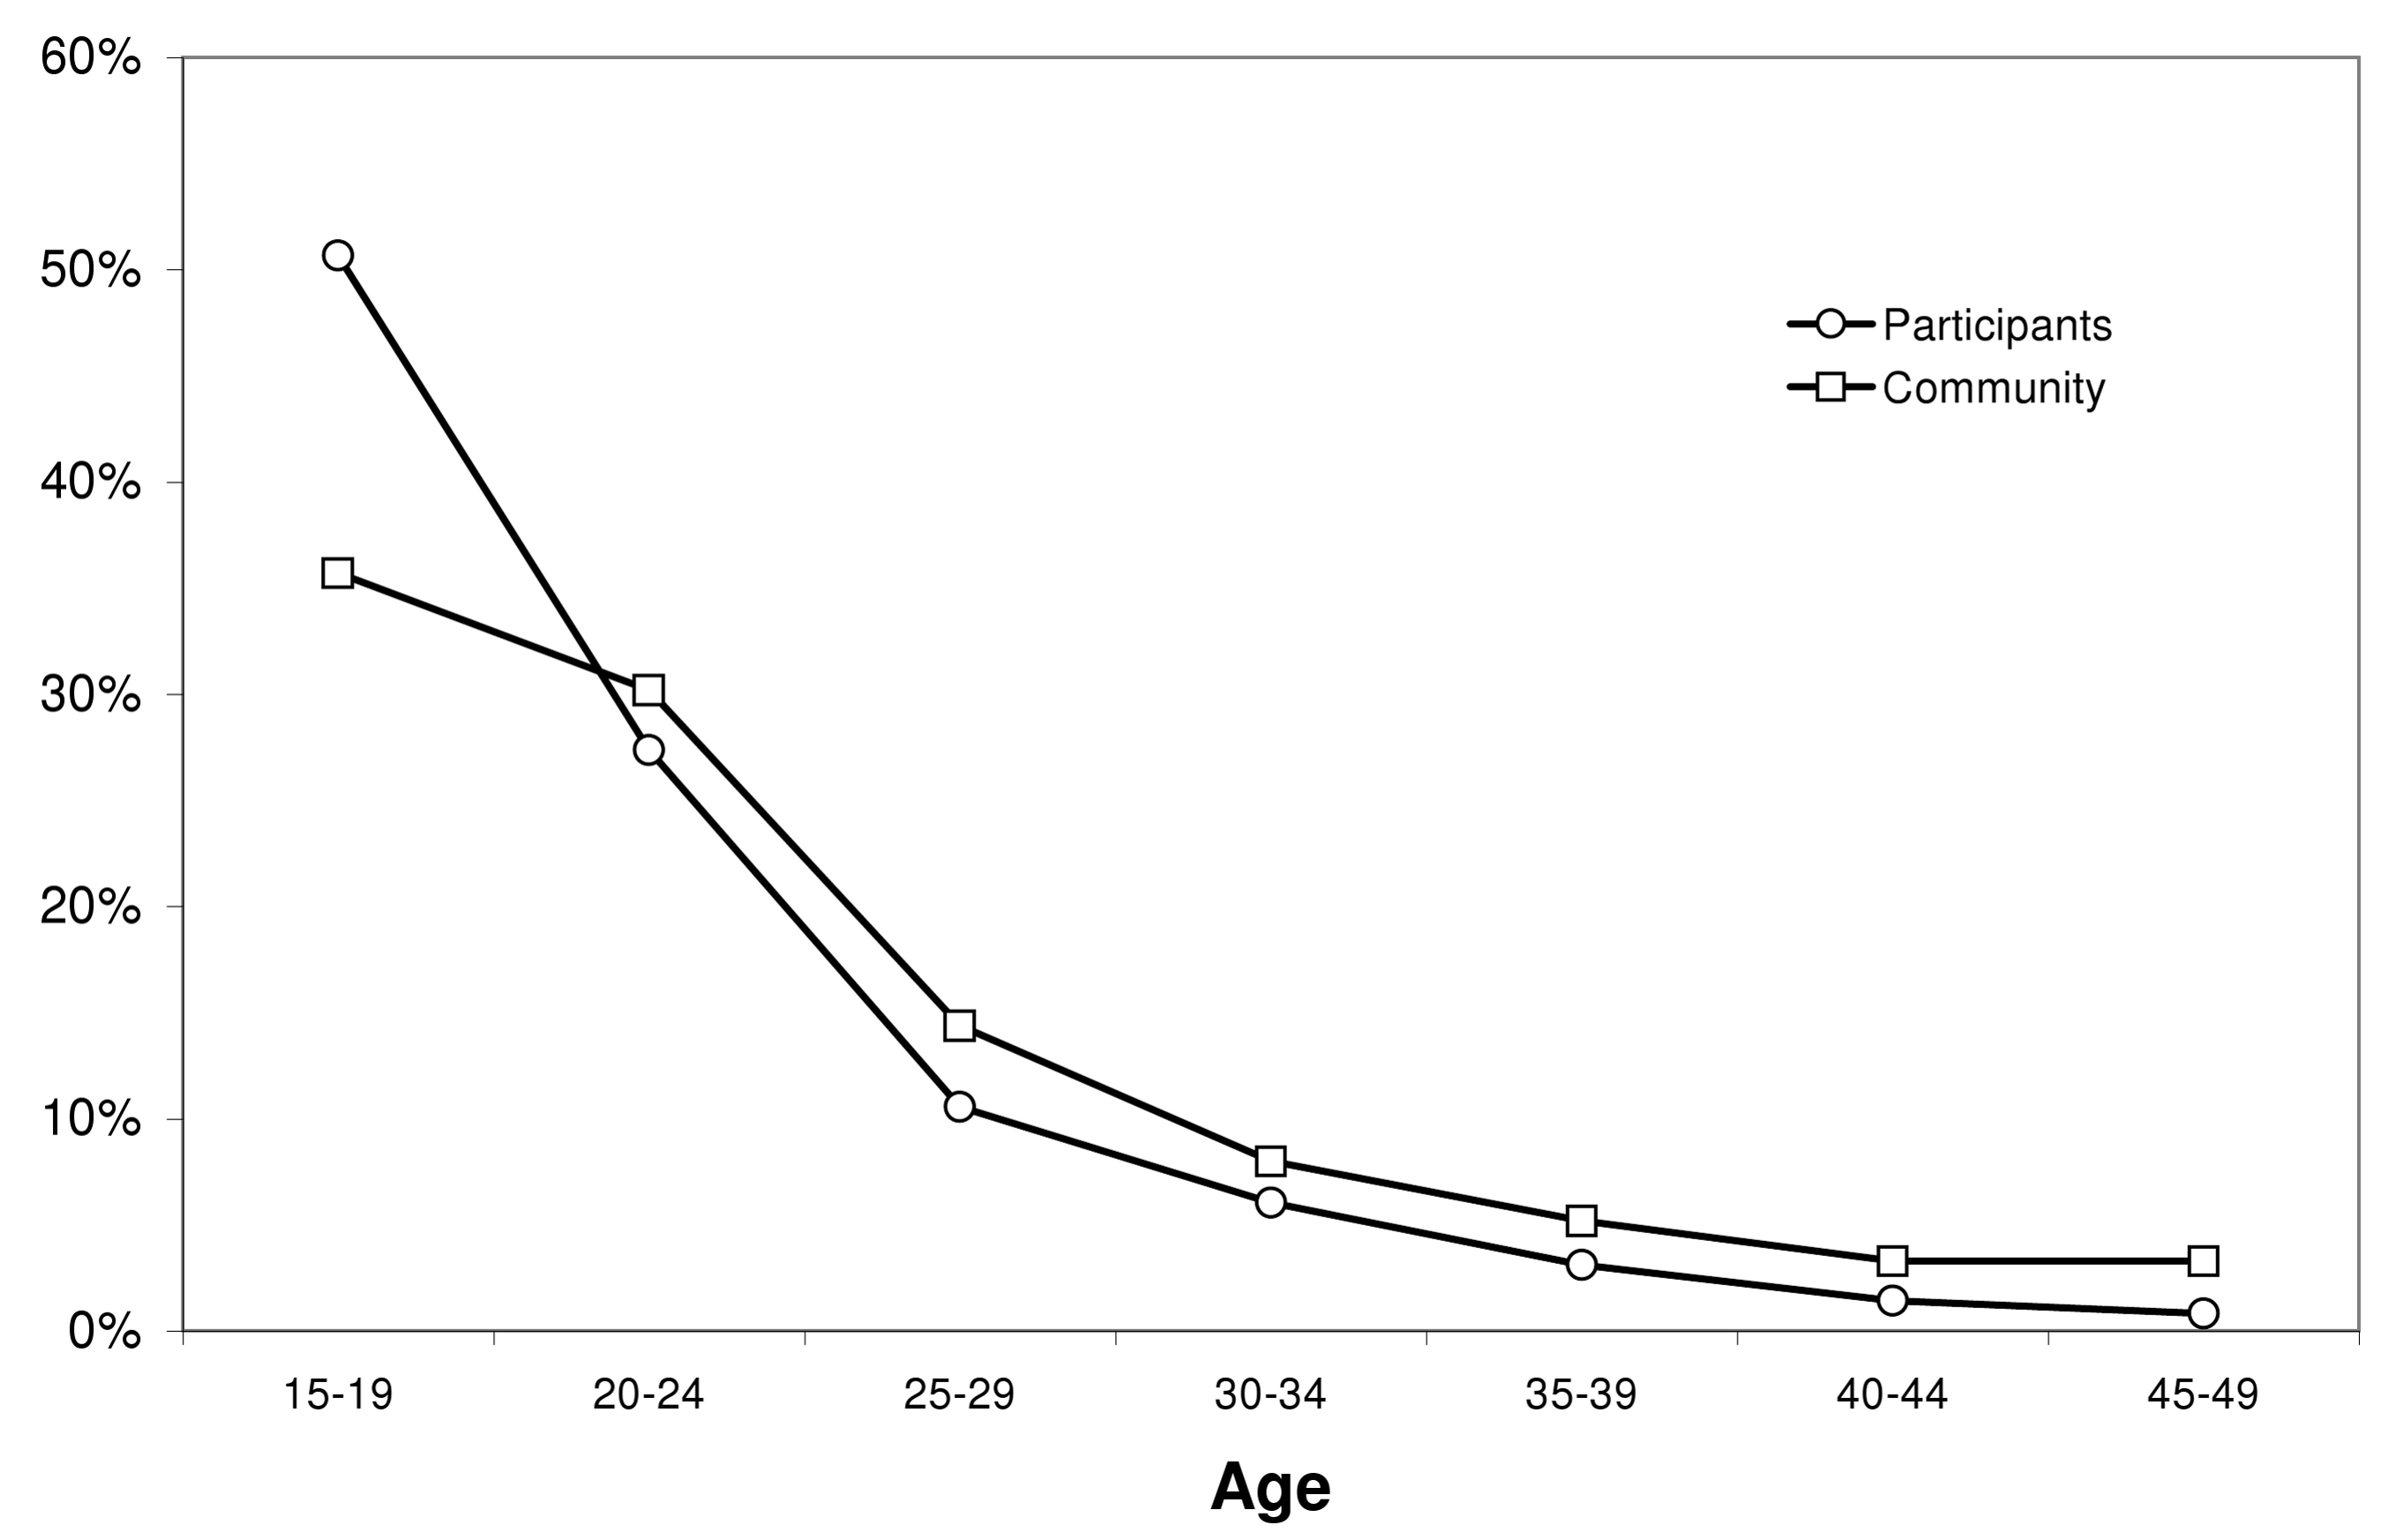 Age distribution among project participants and men of the community.